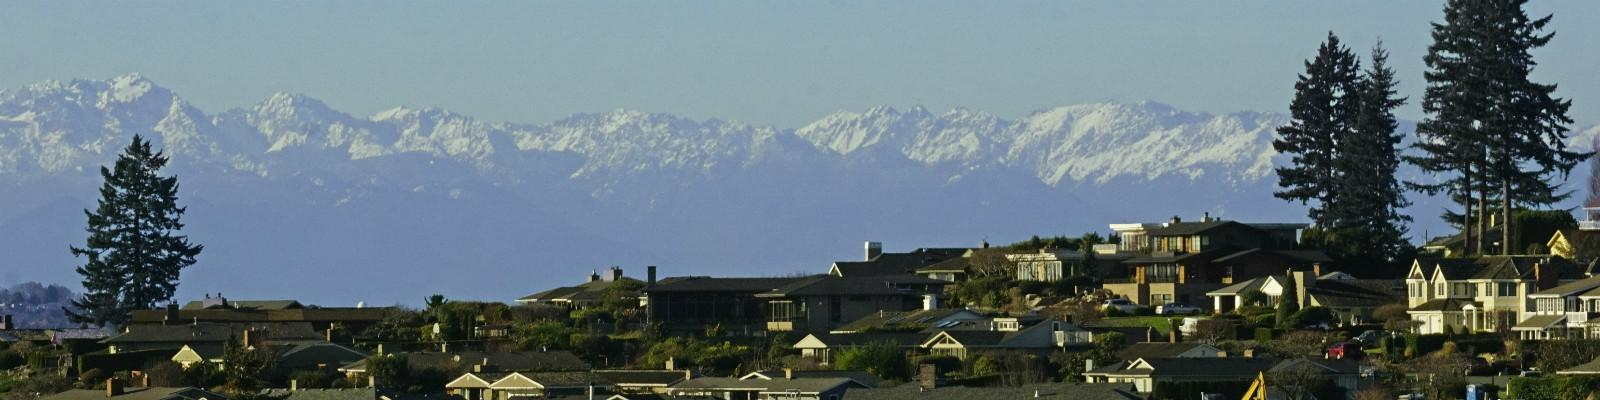 residential neighborhood mtns cropped.jpg